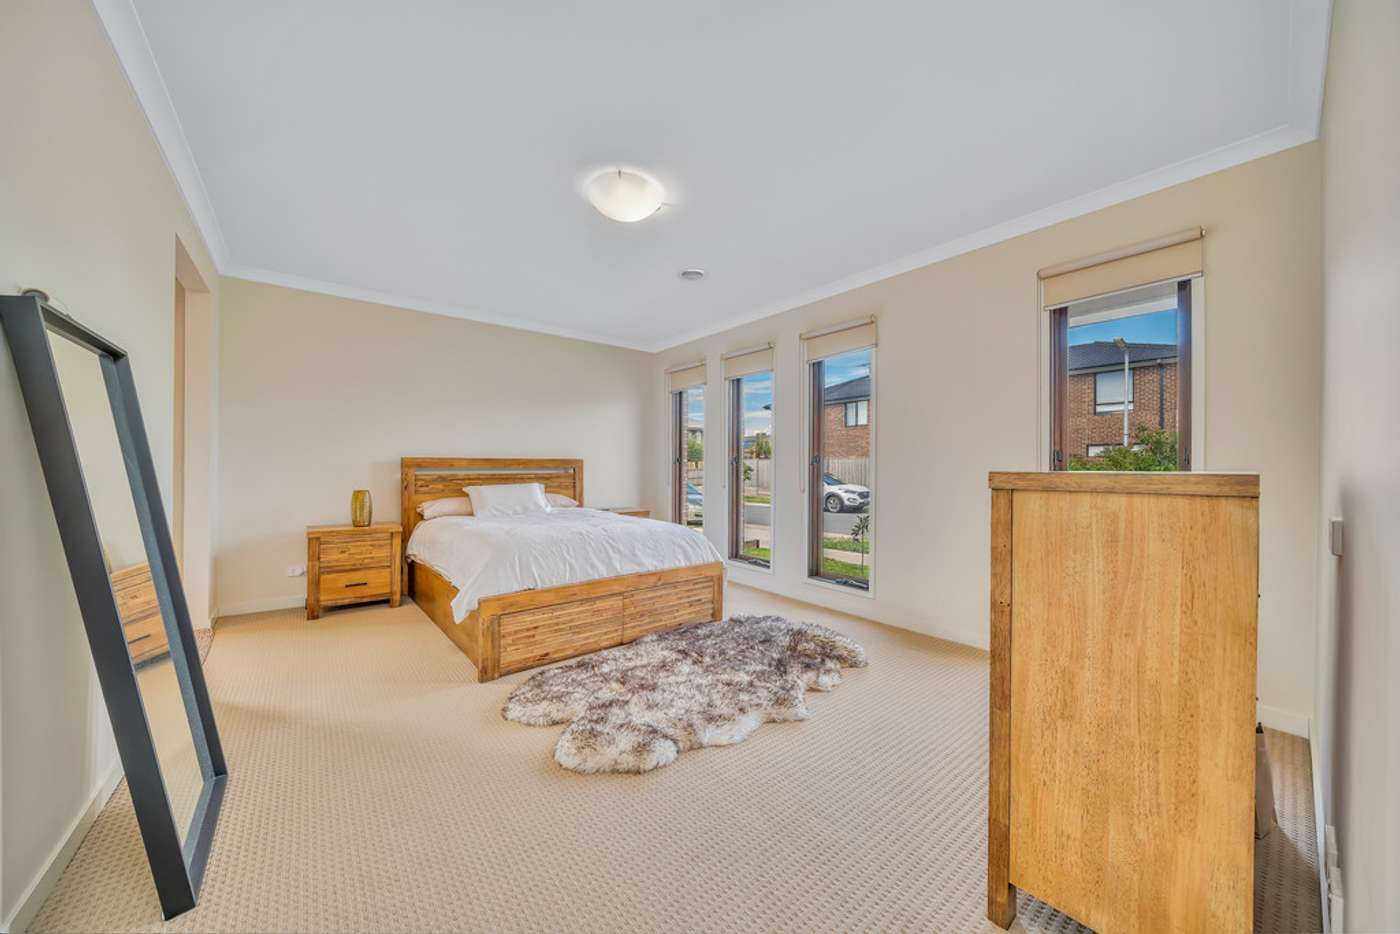 Sixth view of Homely house listing, 8 Mahal Dr, Clyde North VIC 3978